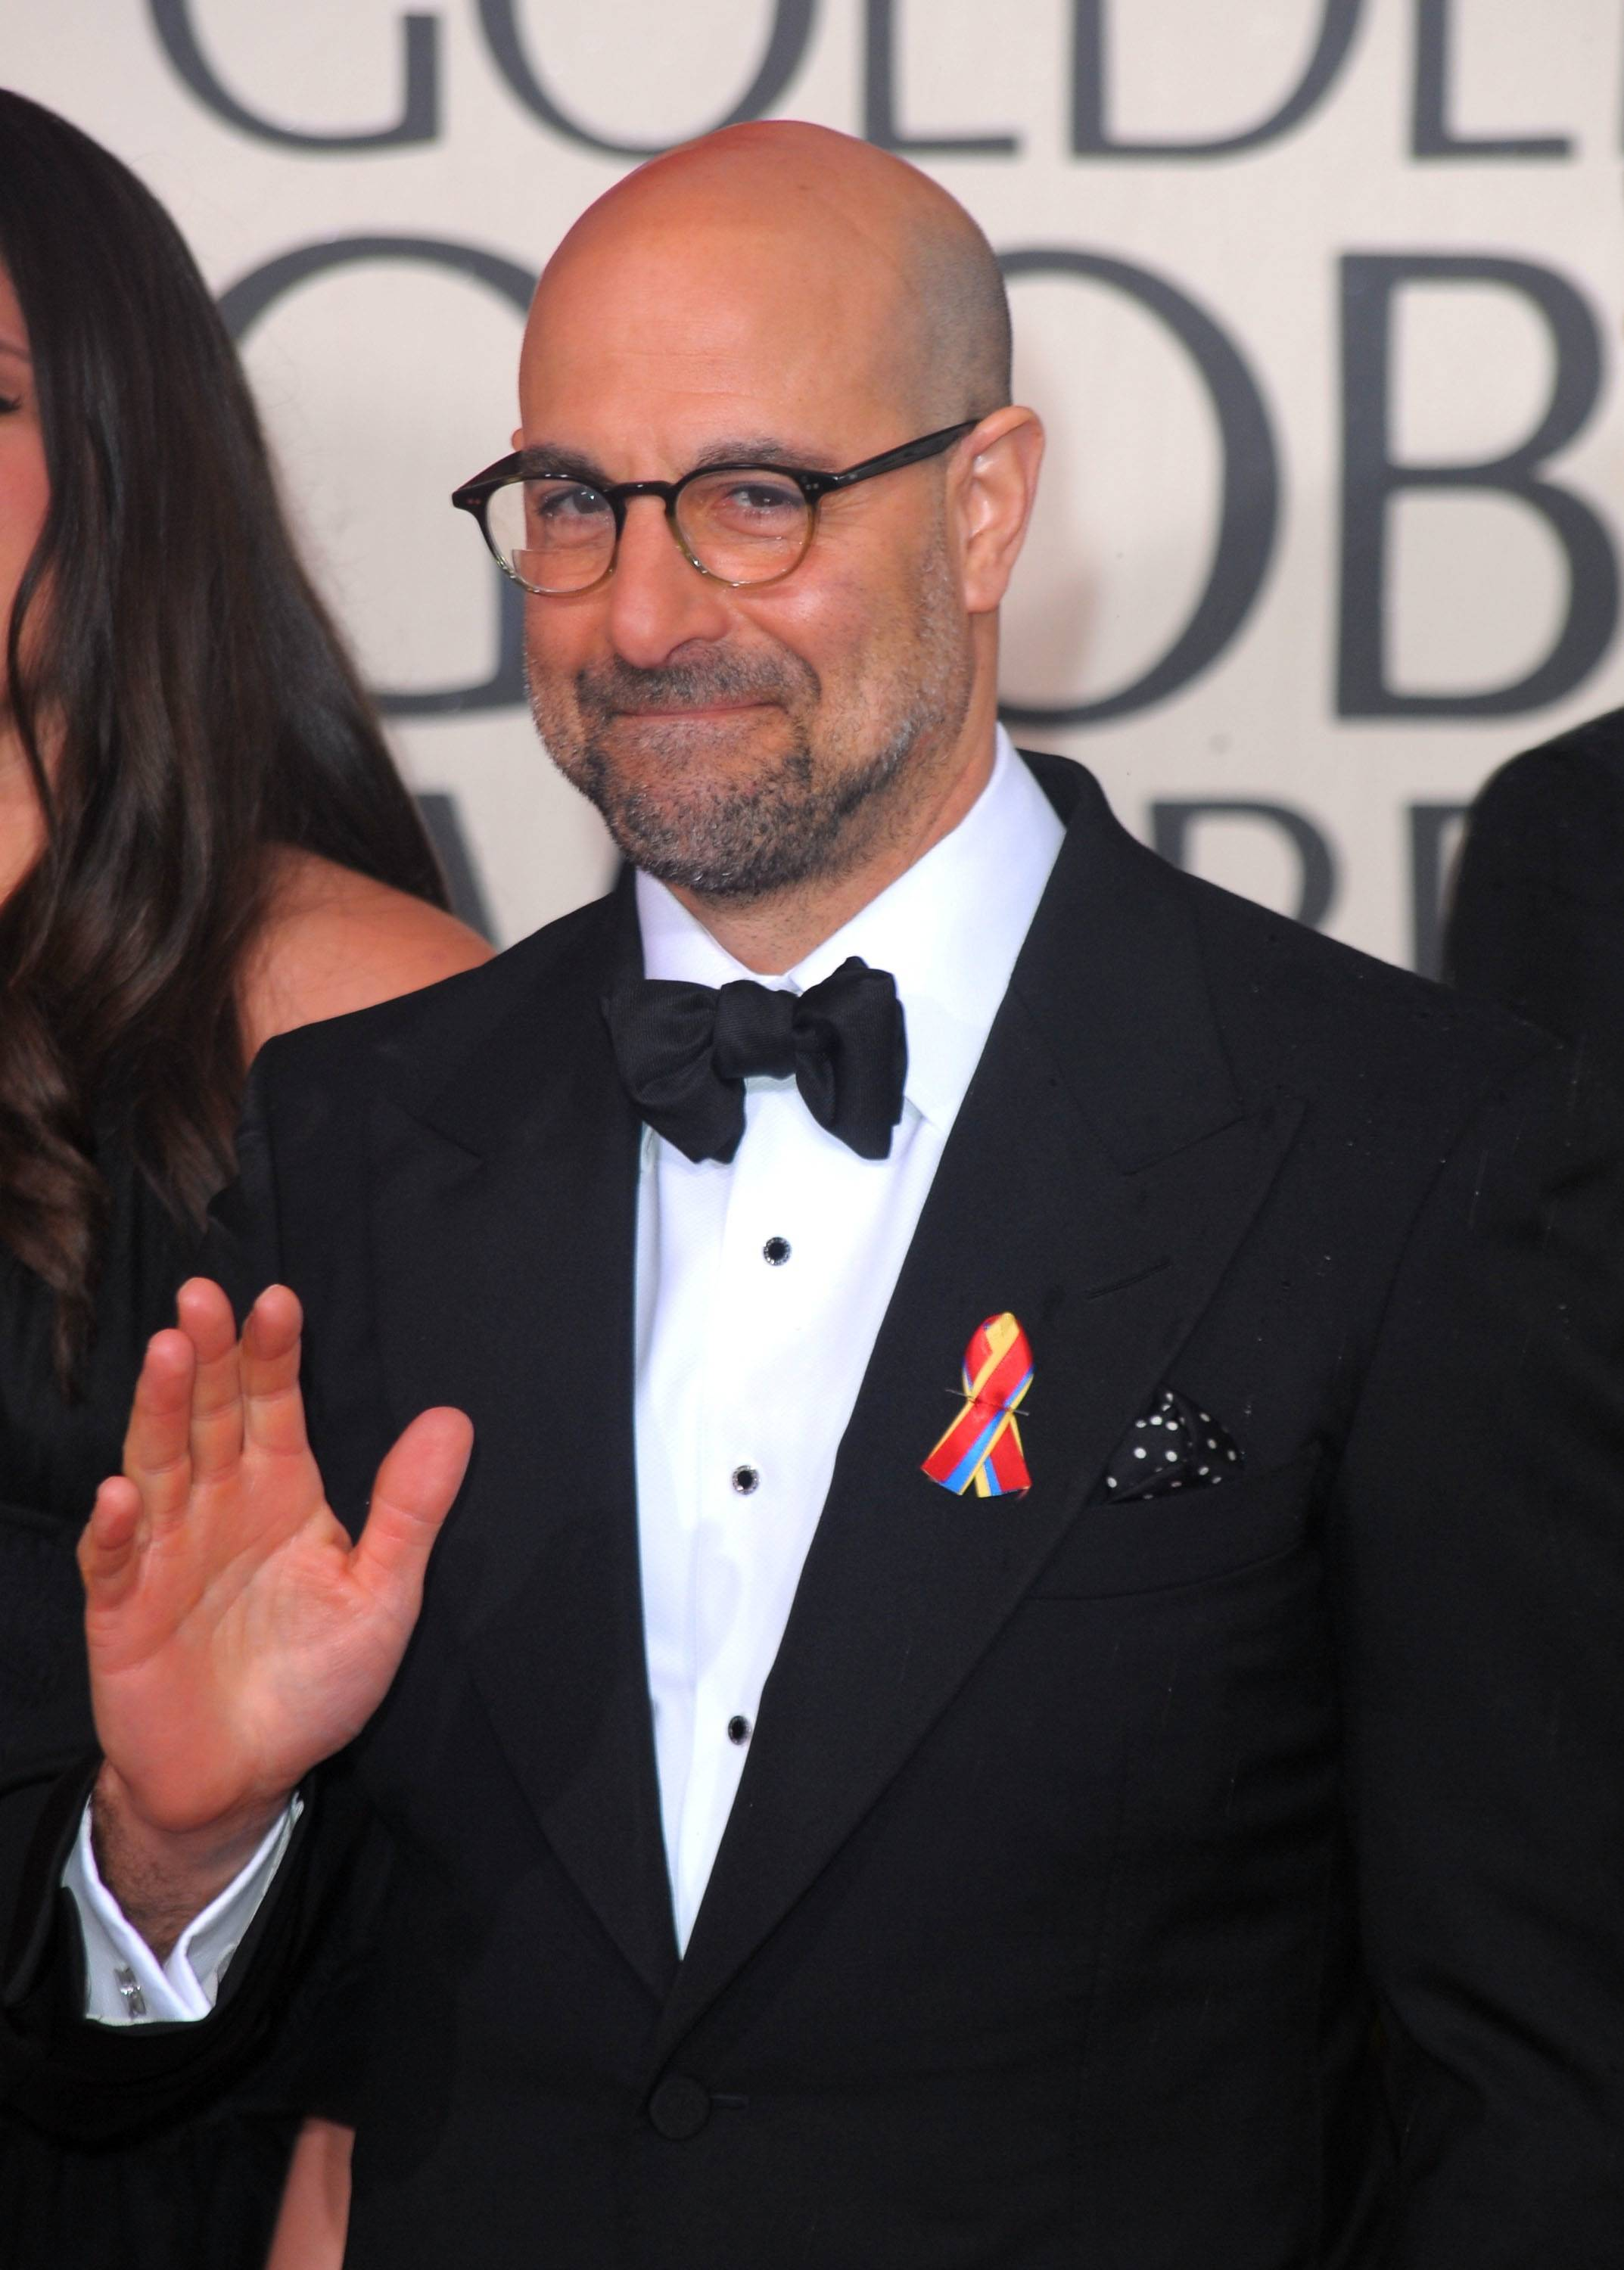 Stanley Tucci HQ wallpapers